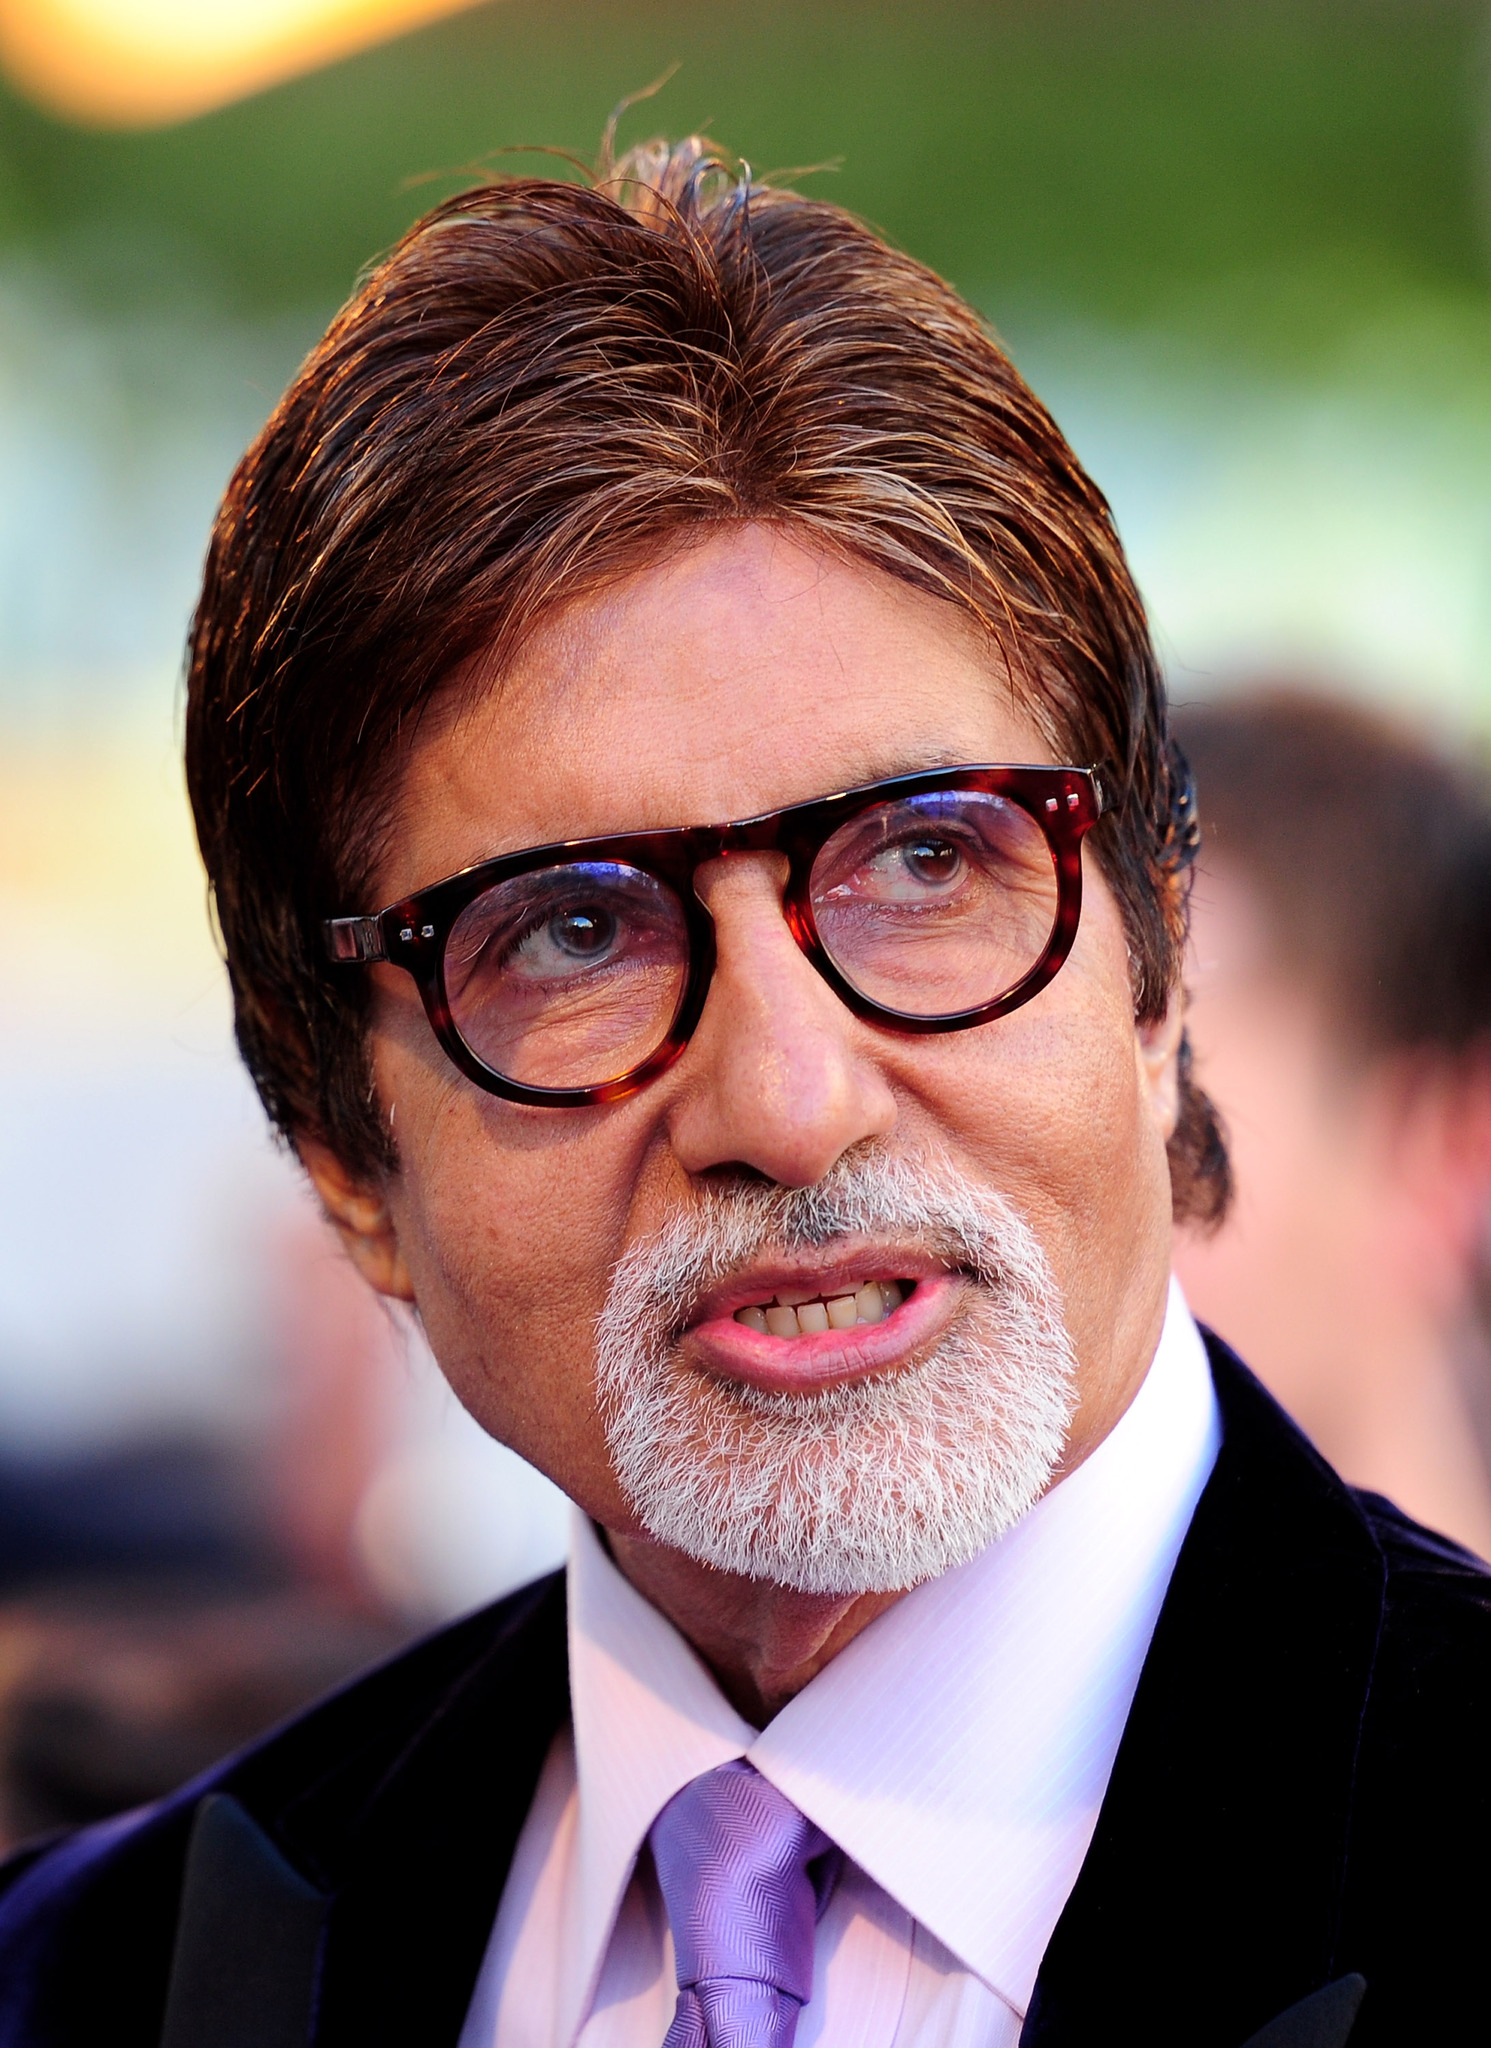 Amitabh Bachchan Most Handsome Men 2018